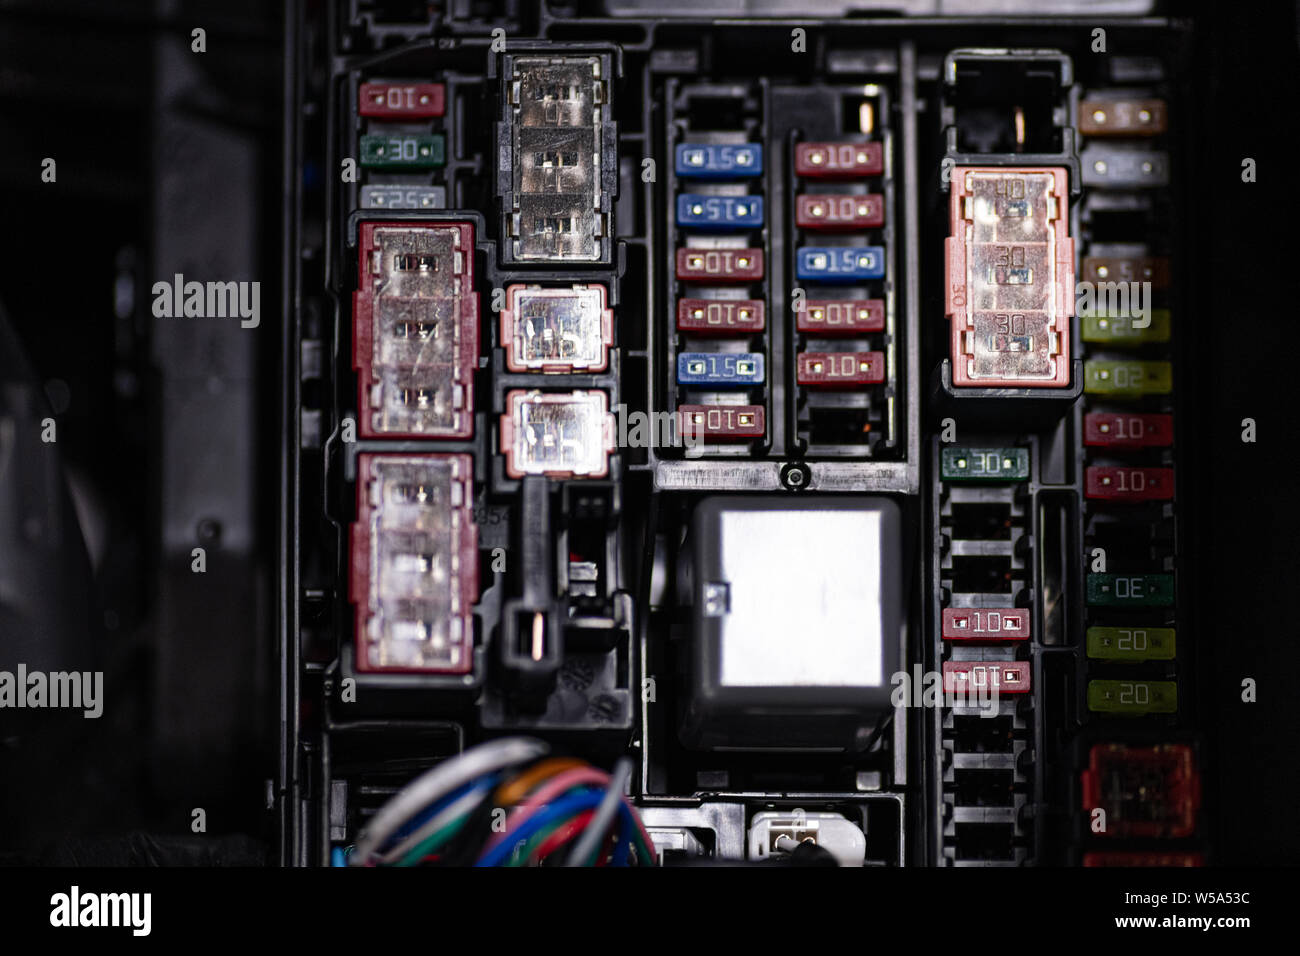 fuse box relays car fuse box with fuses and relays car service stock photo fuse box restaurant oakland car fuse box with fuses and relays car